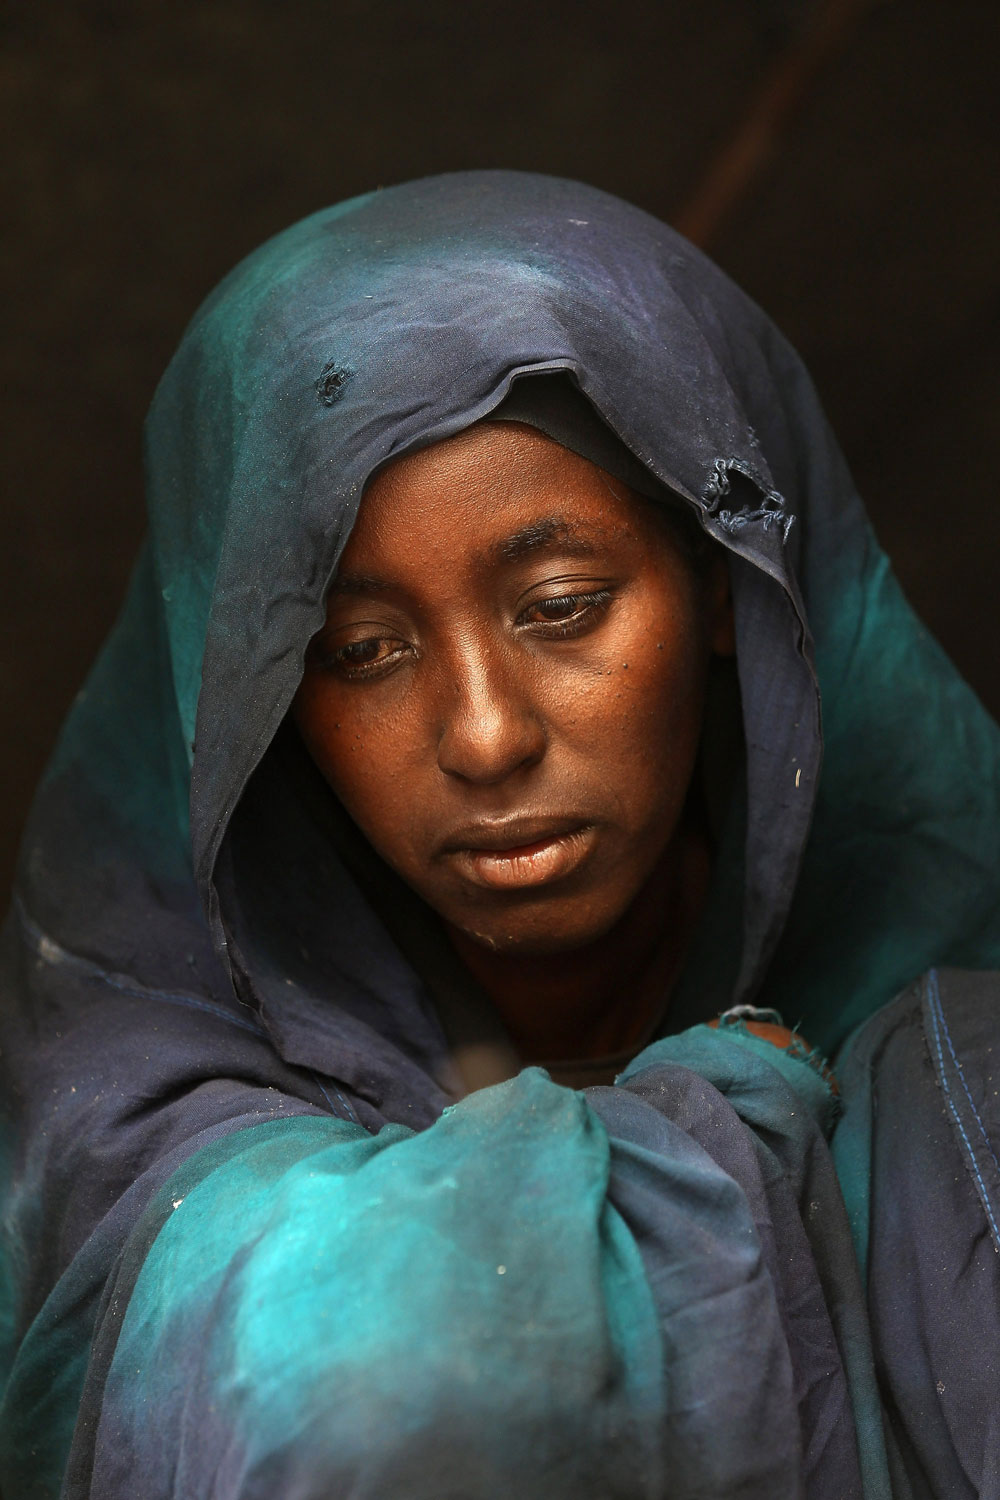 Safia Adem mourns the death of her son Hamza Ali Faysal, 3, in a camp of displaced Somalis within the rubble of the Cathedral of Mogadishu on August 13, 2011 in Mogadishu, Somalia. The malnourished child died of sickness two weeks after fleeing with his family from famine and drought in far southern Somalia. The US government estimates that some 30,000 children have died in southern Somalia in the last 90 days from the crisis.